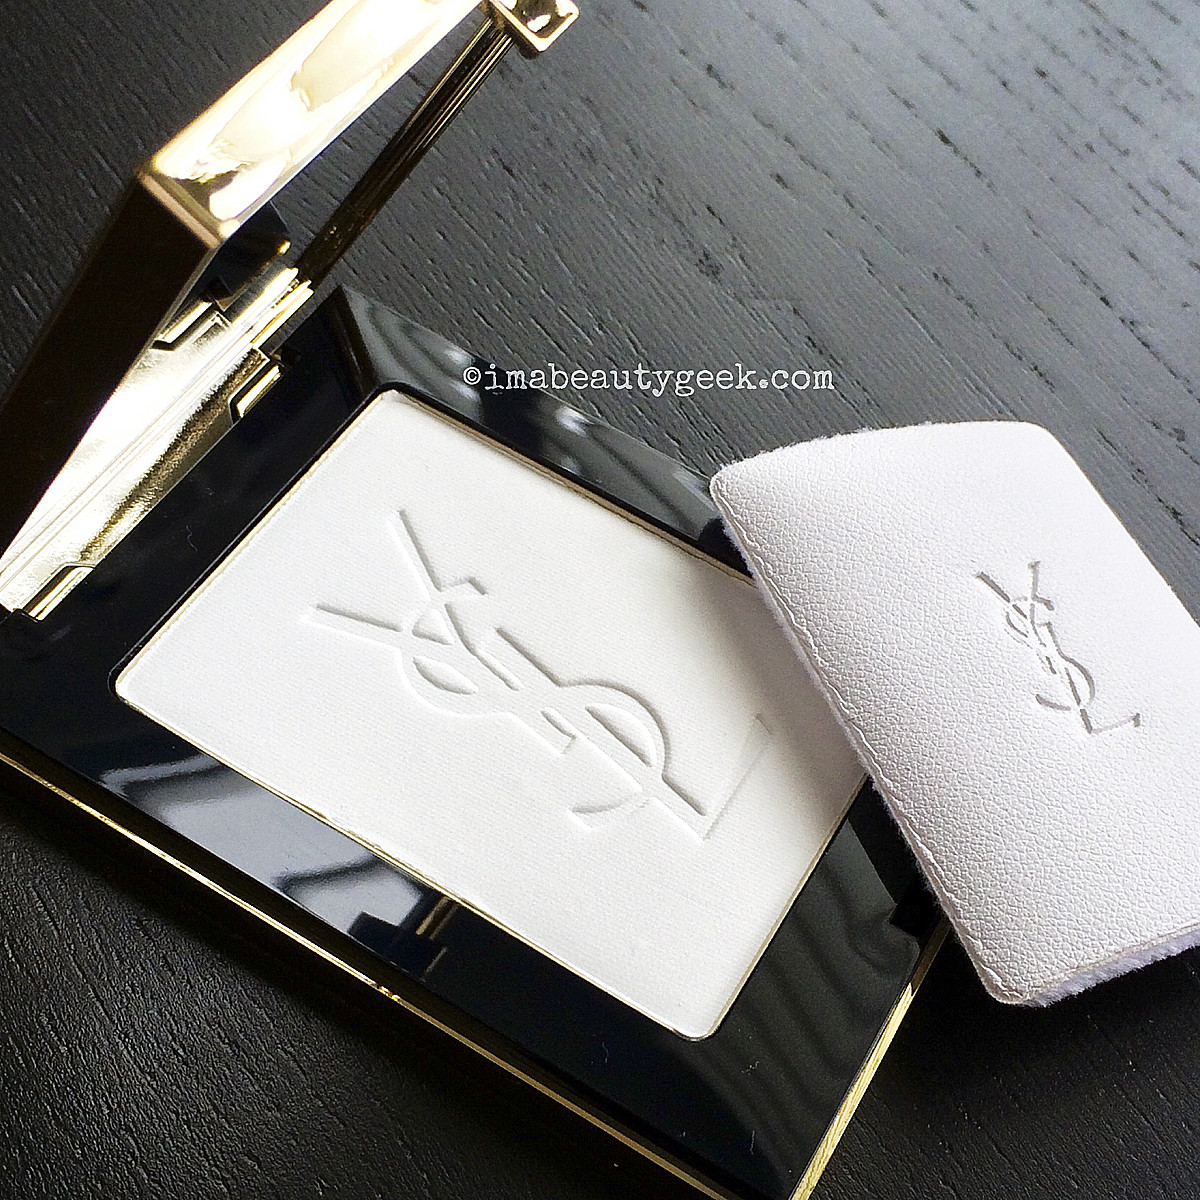 YSL Pretty Metal Fall 2015_Univeral Radiance Matte Blur Powder